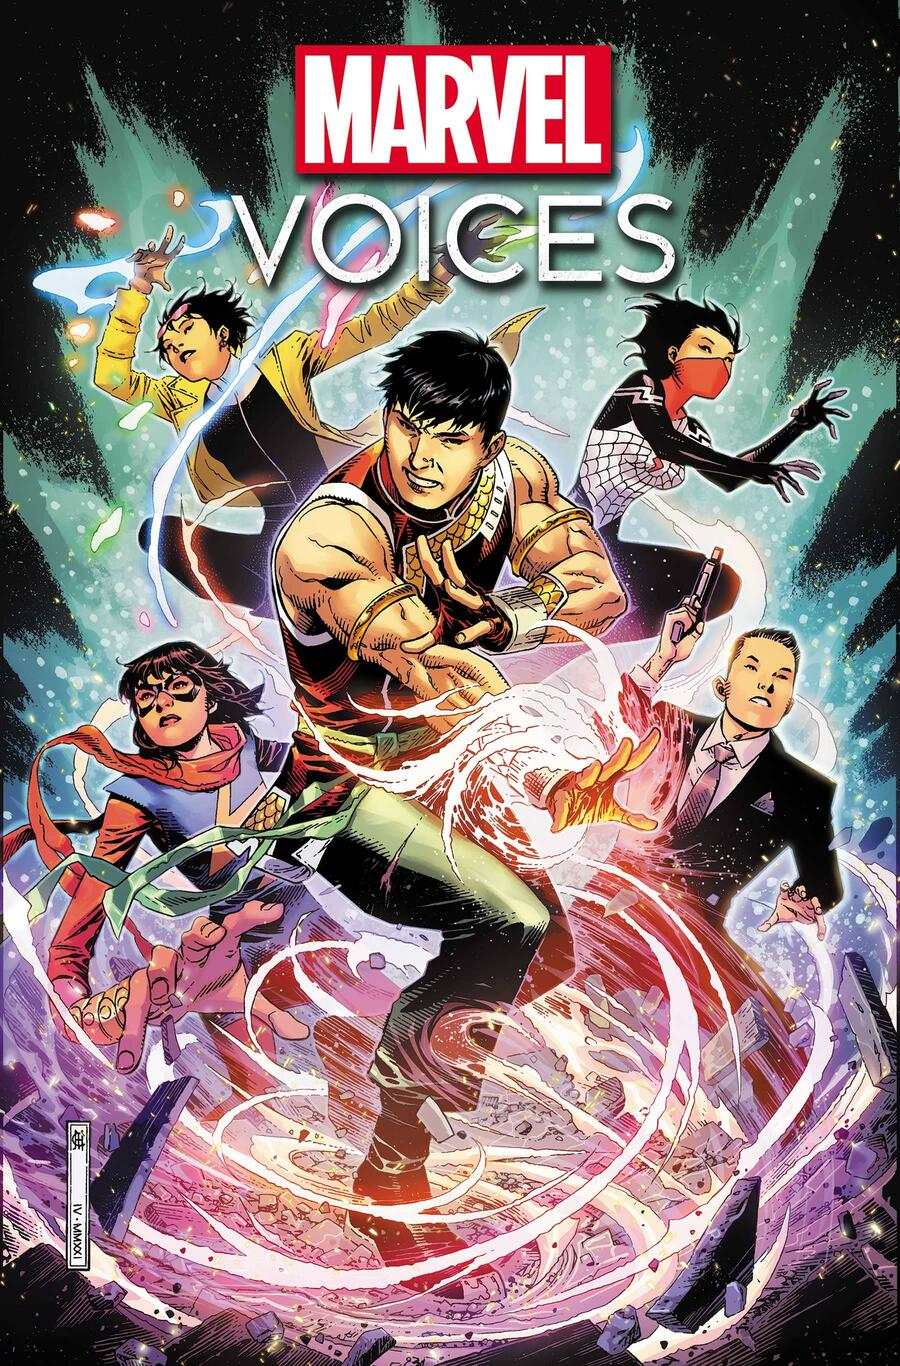 MARVEL'S VOICES: IDENTITY #1 Cover by JIM CHEUNG